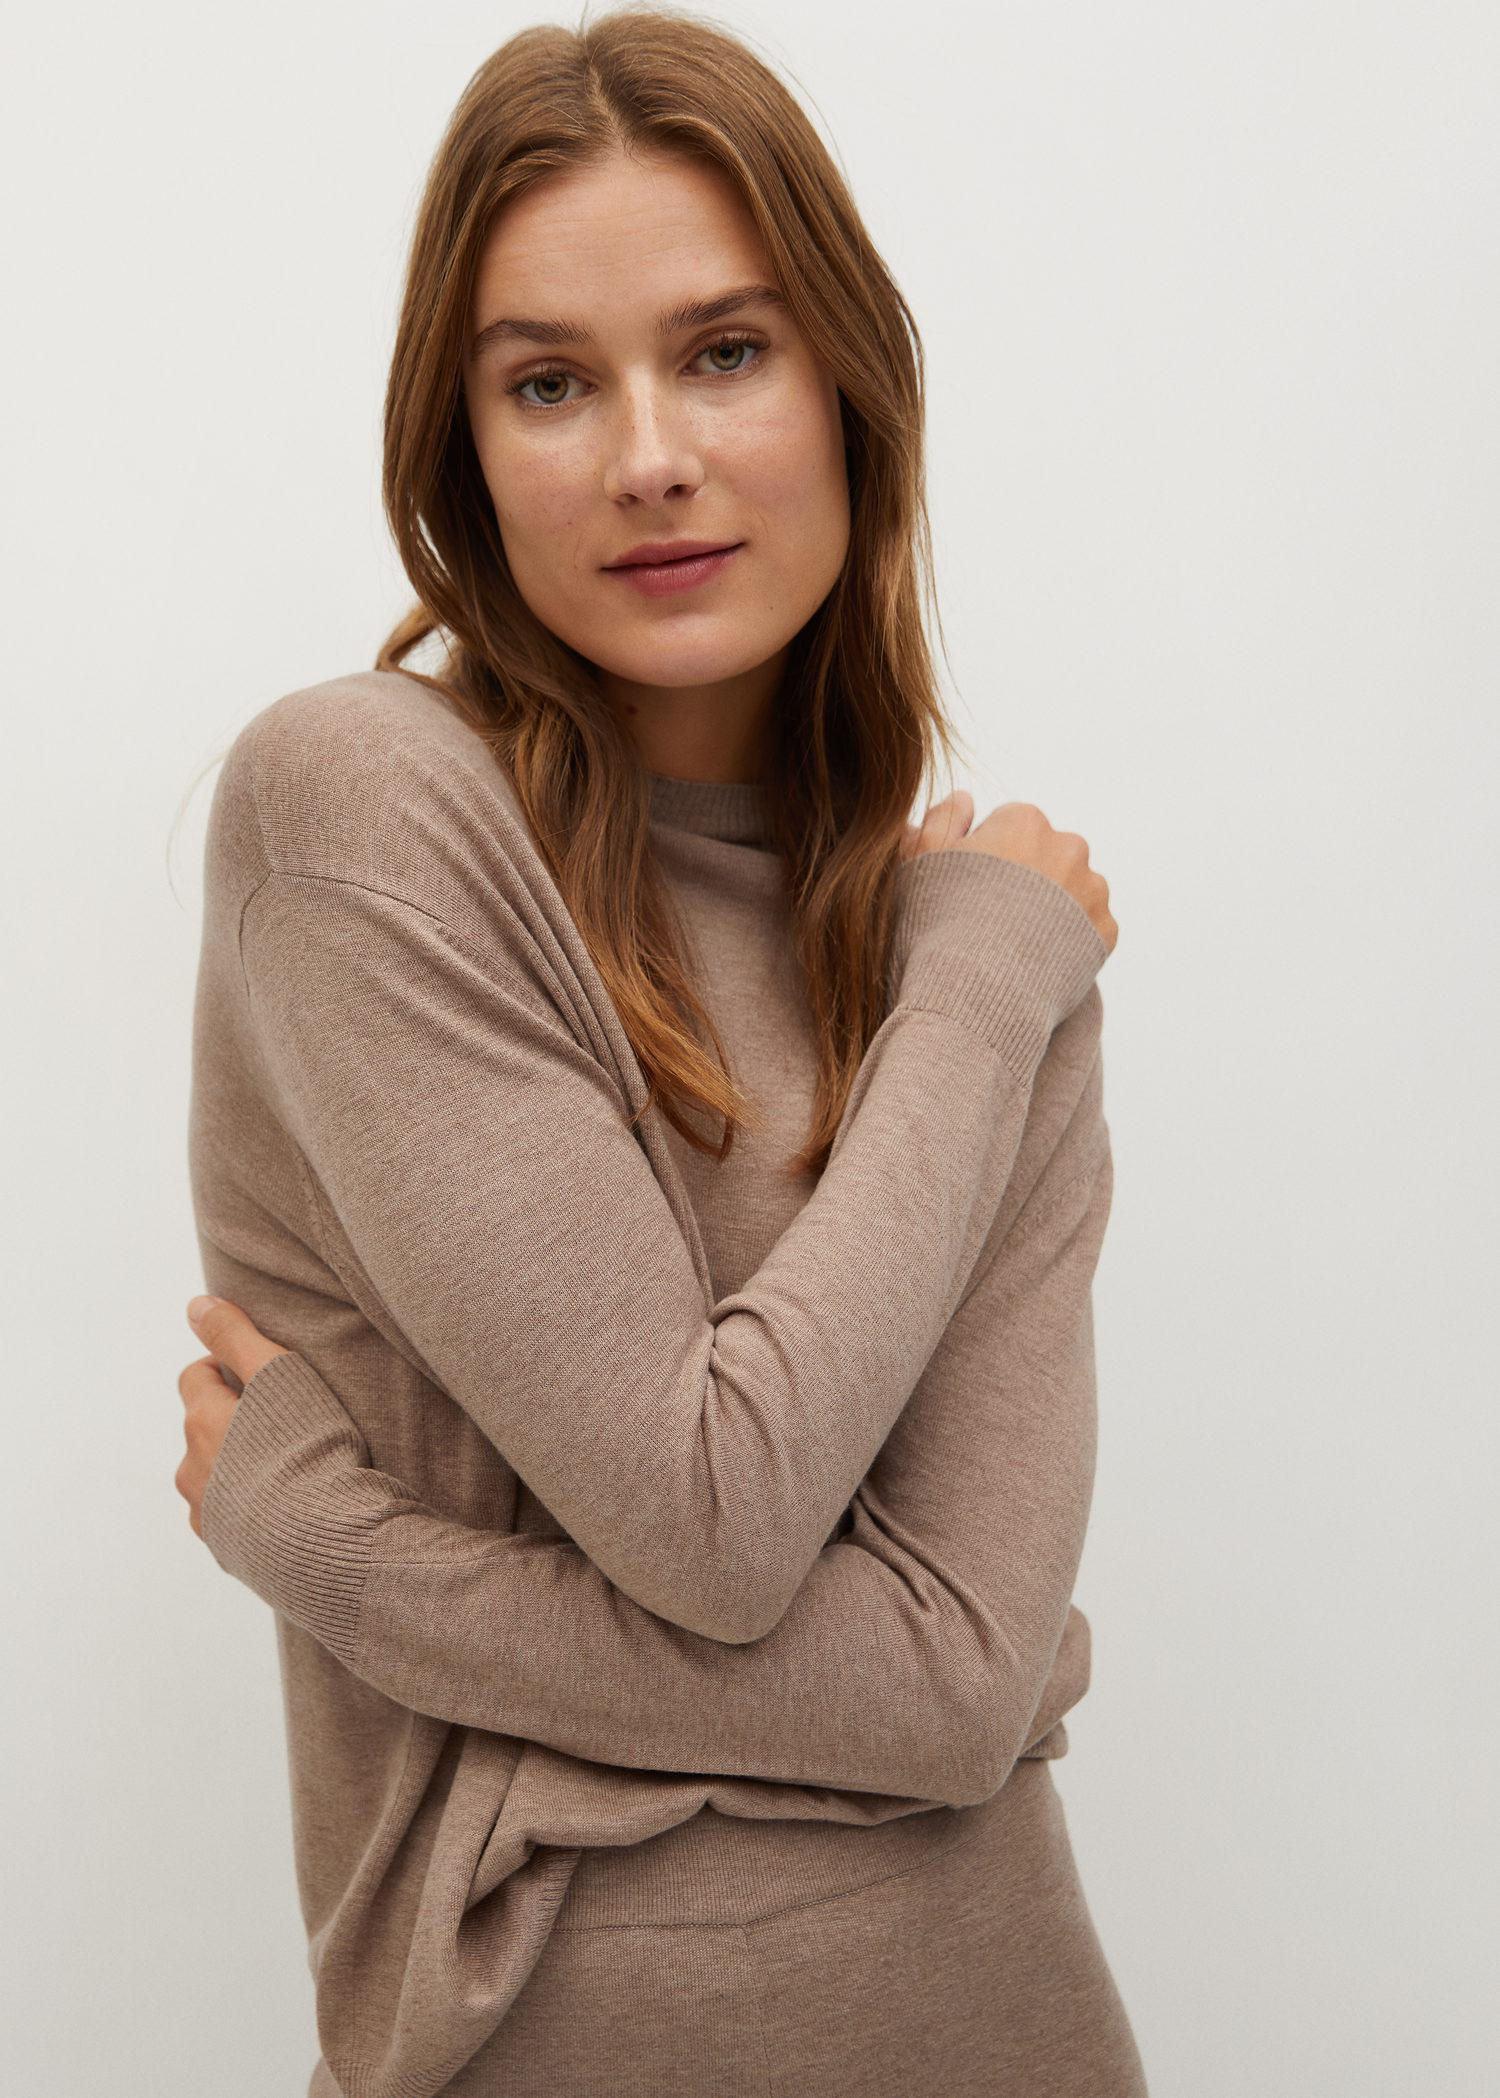 Cashmere jersey